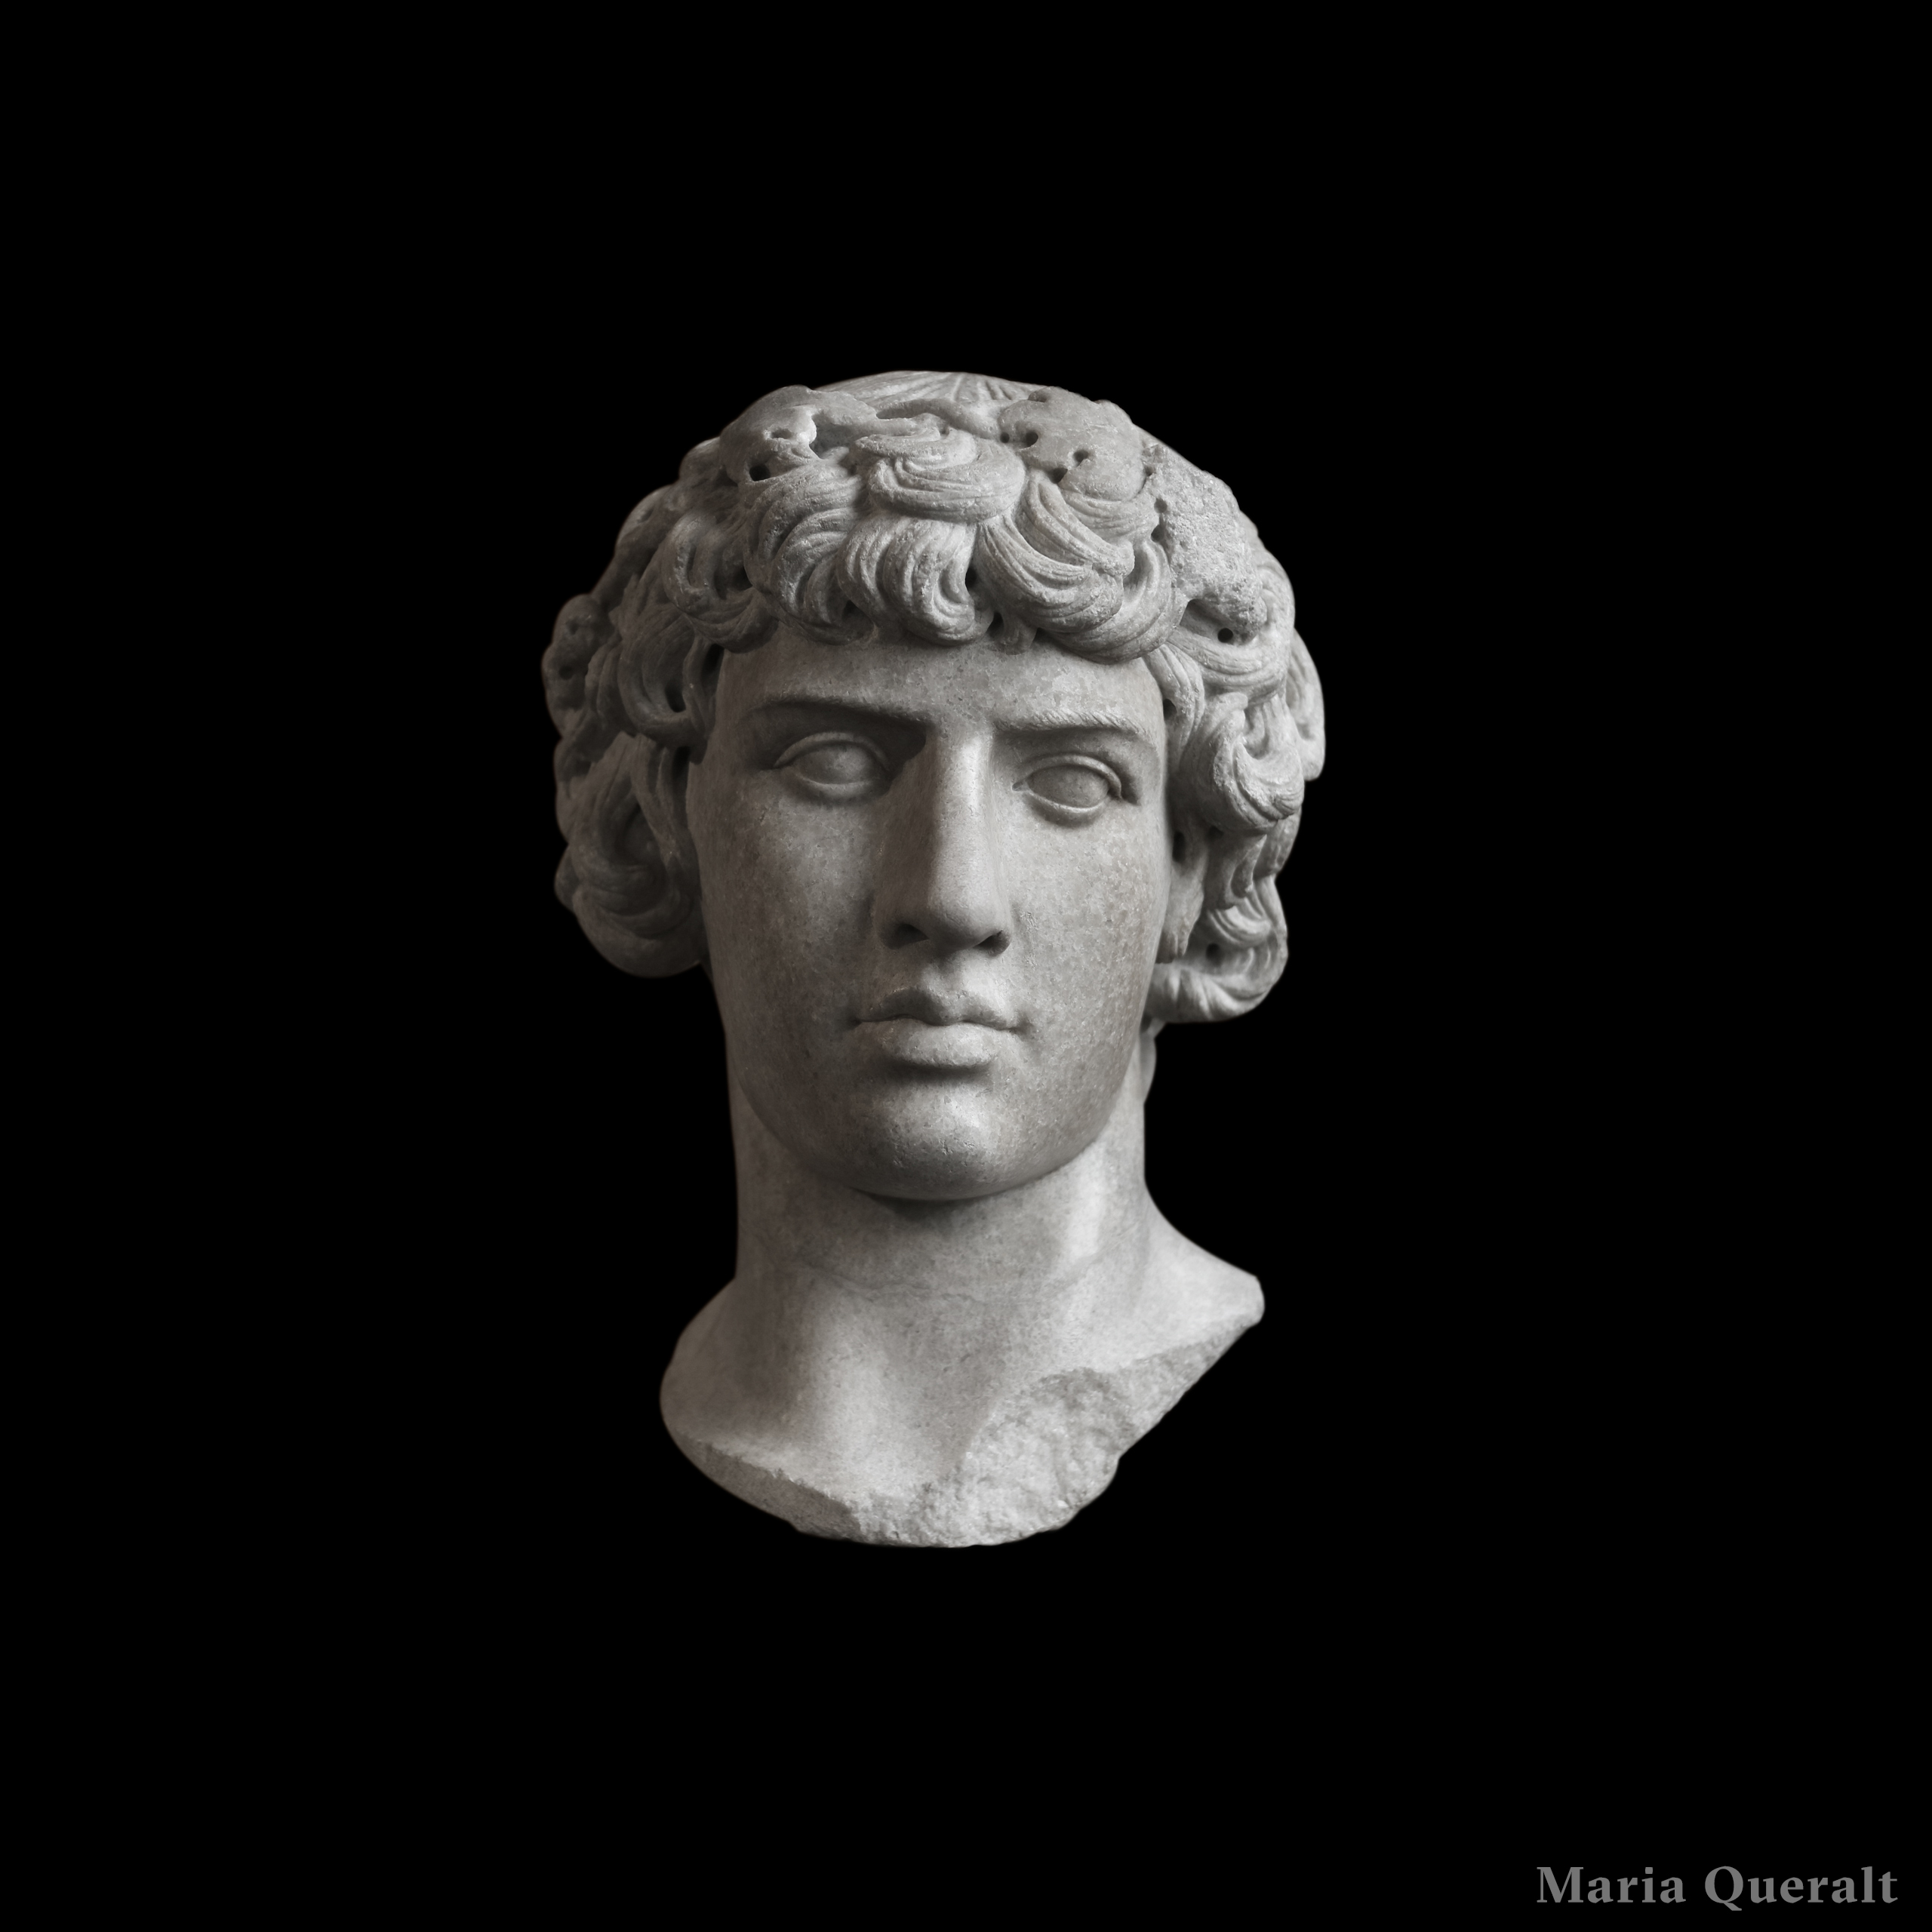 Bust Sculpture of Antinous Dionysos lover of Hadrian in marble placed at the Louvre Museum in Paris Photography and retouch by Maria Queralt